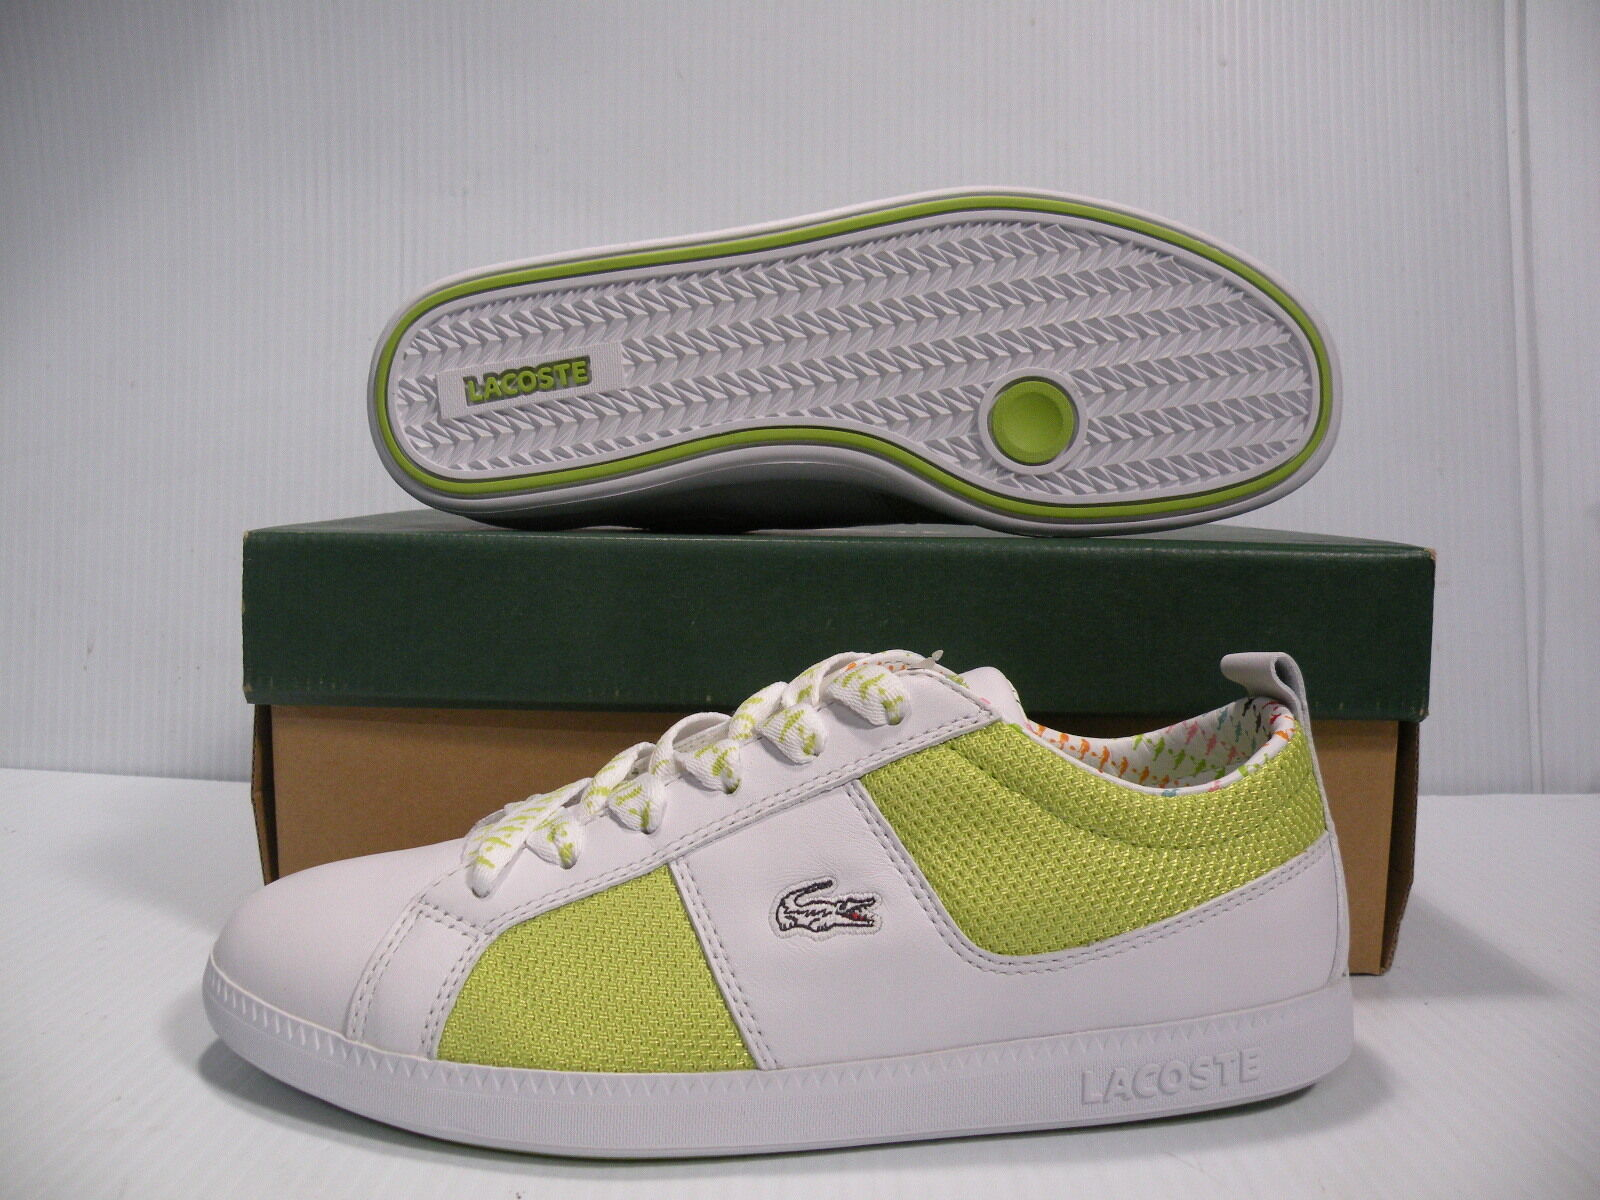 LACOSTE OBSERVE TNS SPORT LOW WOMEN SHOES WHITE GREEN 13SPW1961-F01 SIZE 8 NEW